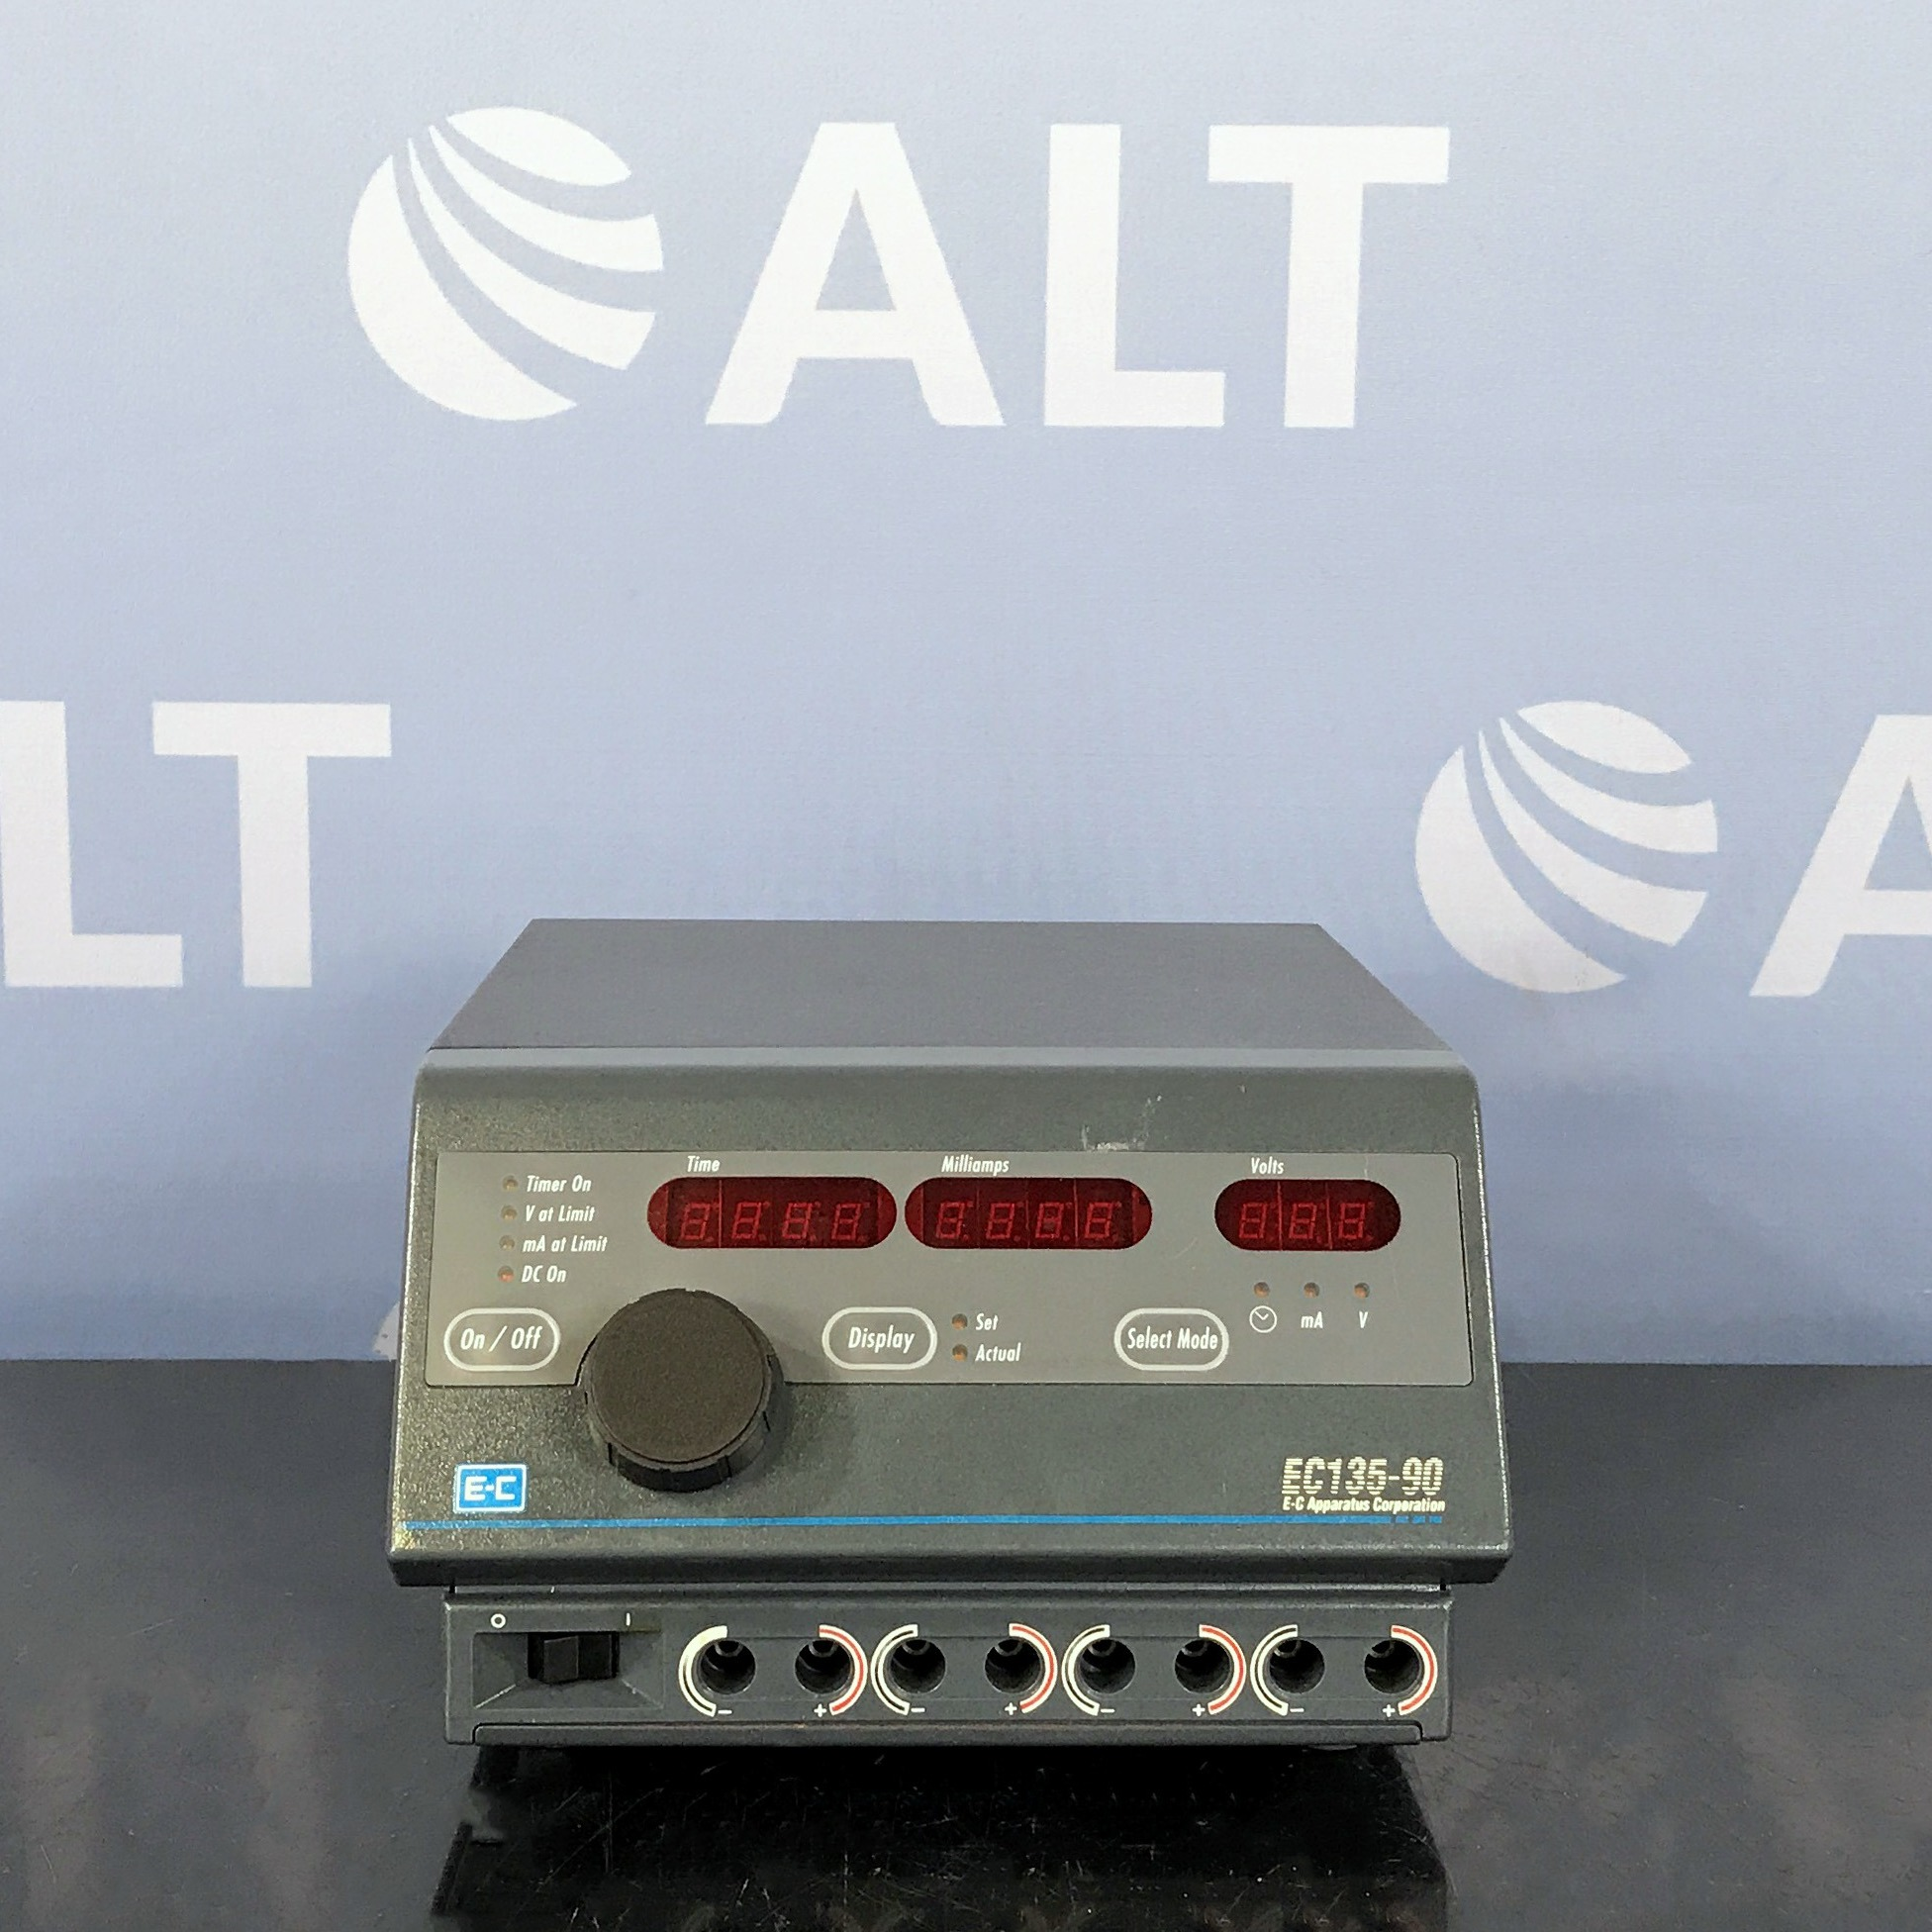 EC135-90 Minicell Power Supply Name